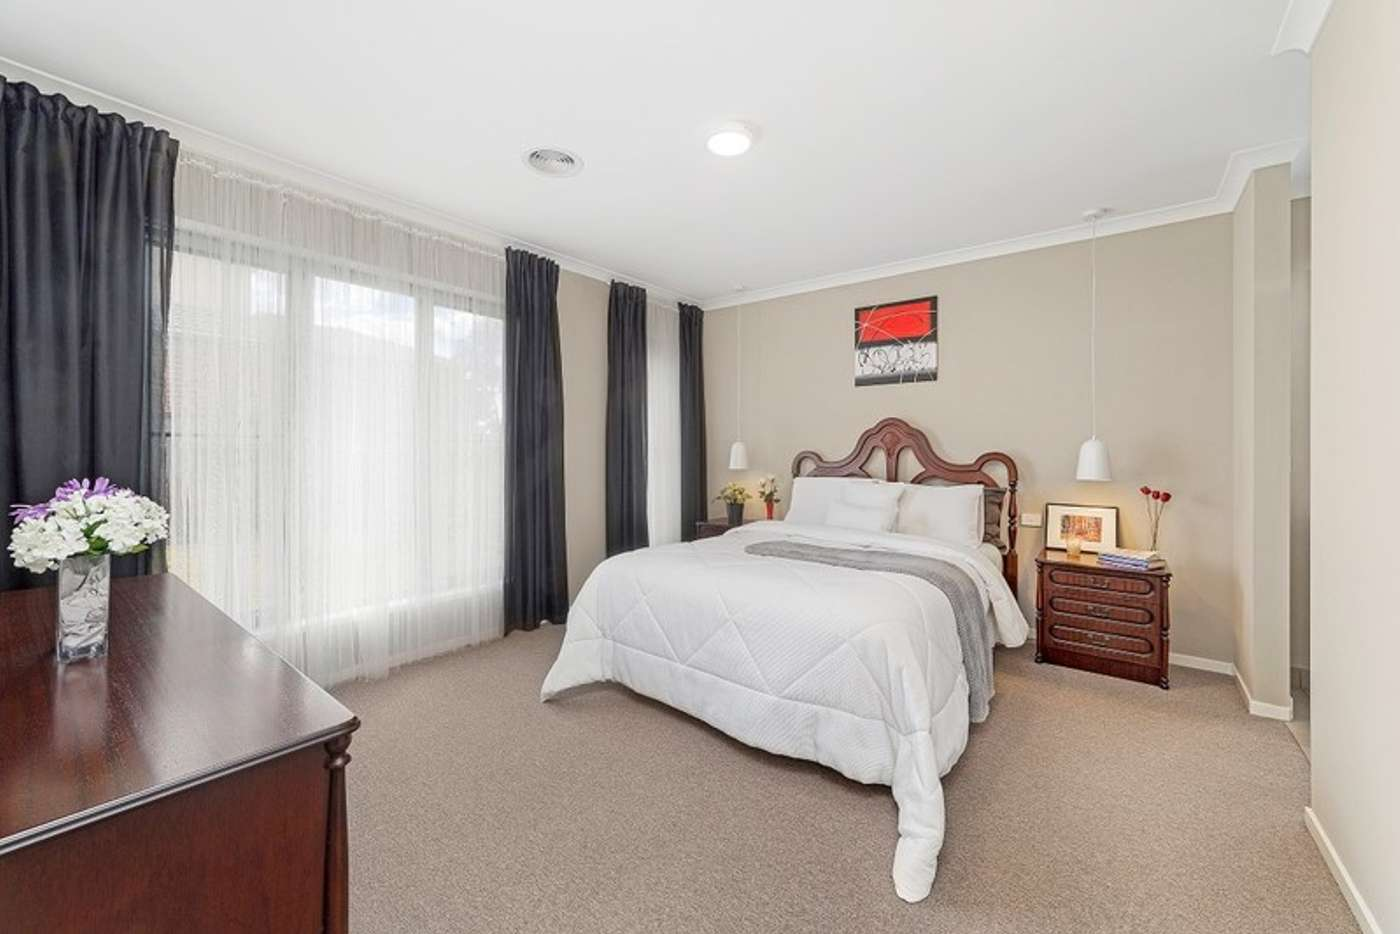 Sixth view of Homely house listing, 8 Polesden Mews, Roxburgh Park VIC 3064